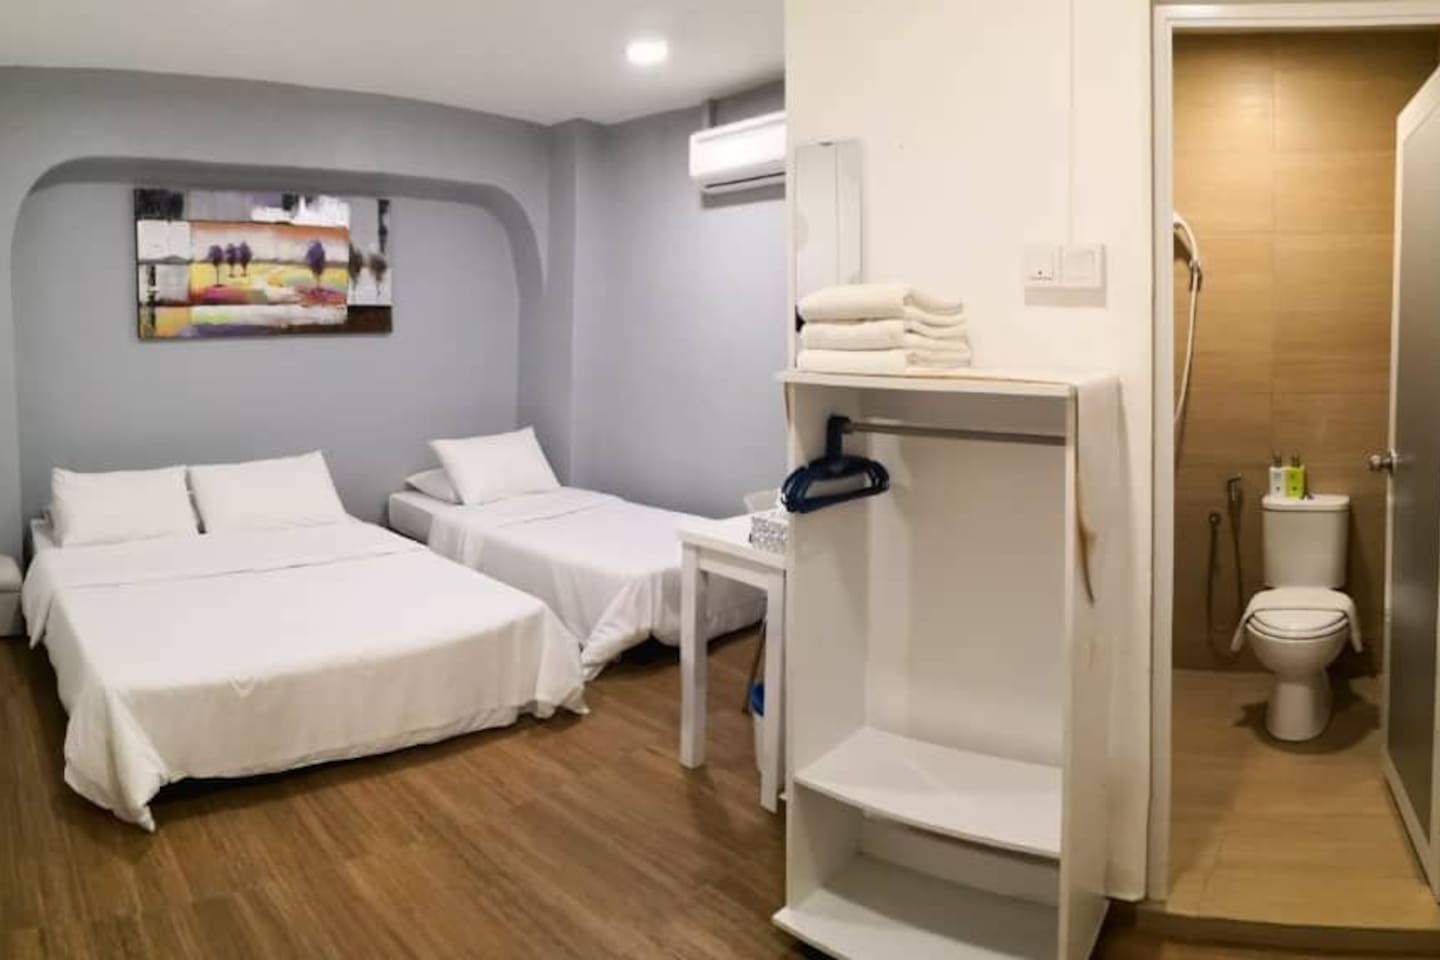 Room 103 - Triple room for 3 guest.